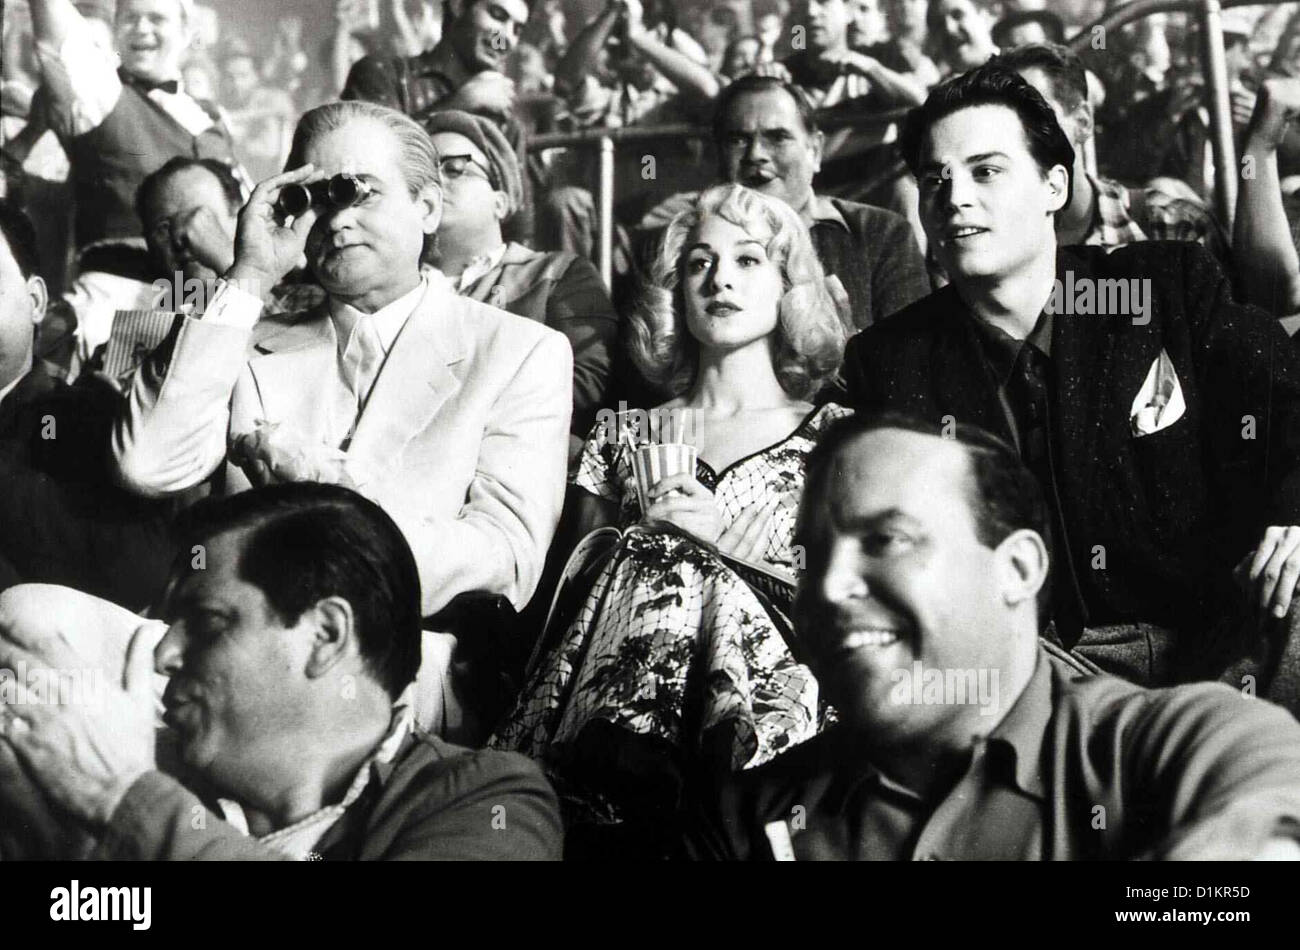 Ed Wood  Ed Wood  Bill Murray, Sarah Jessica Parker, Johnny Depp Ed Wood (Johnny Depp,r) mit seiner Freundin Dolores - Stock Image